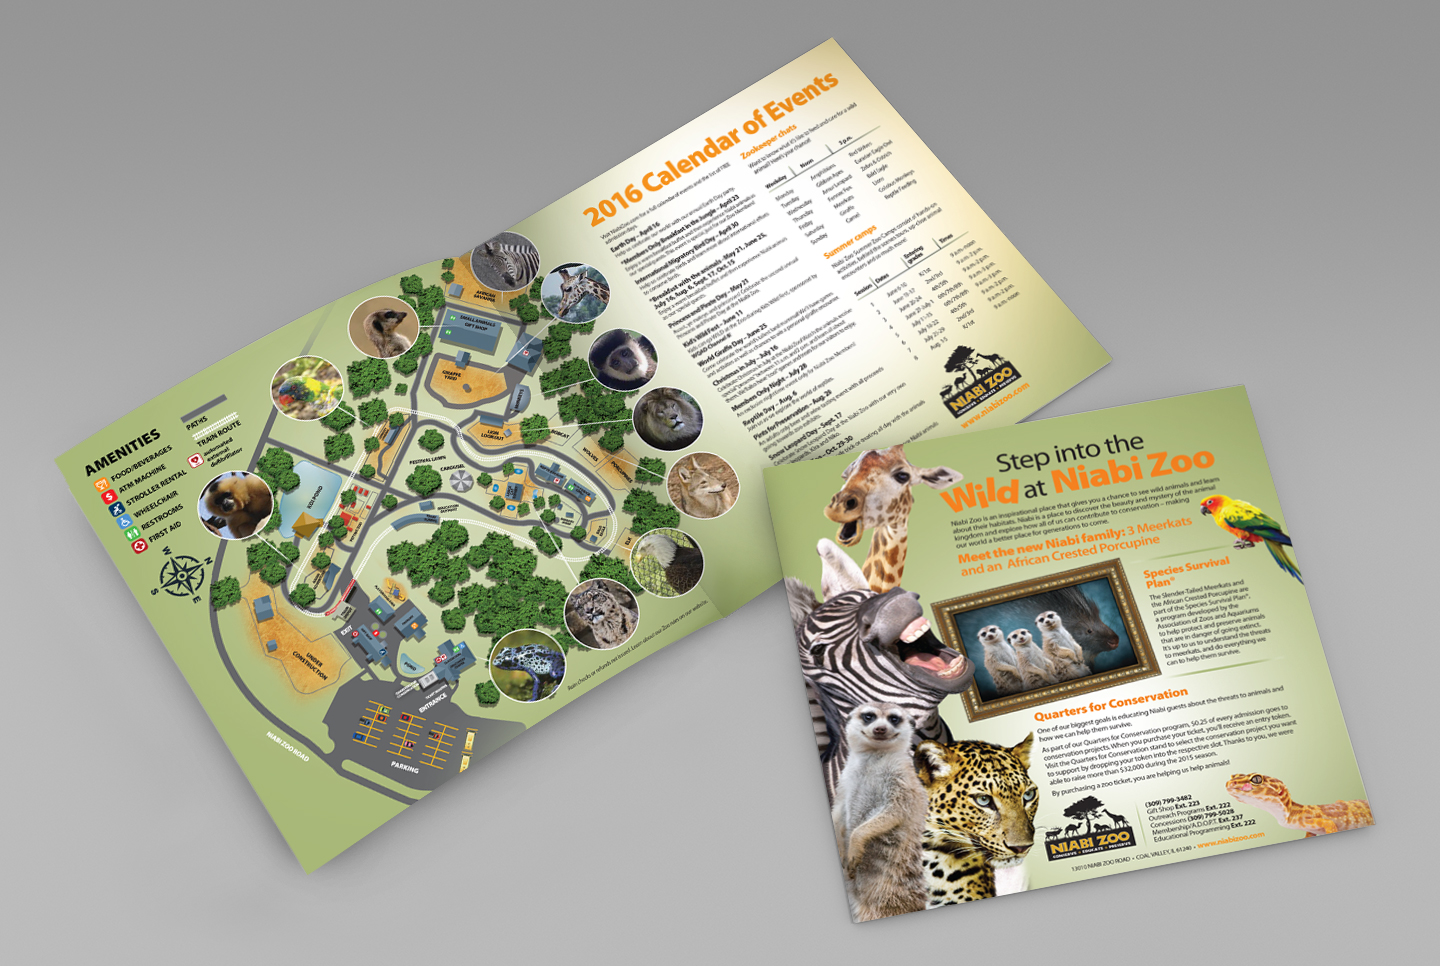 Niabi Zoo map by MindFire